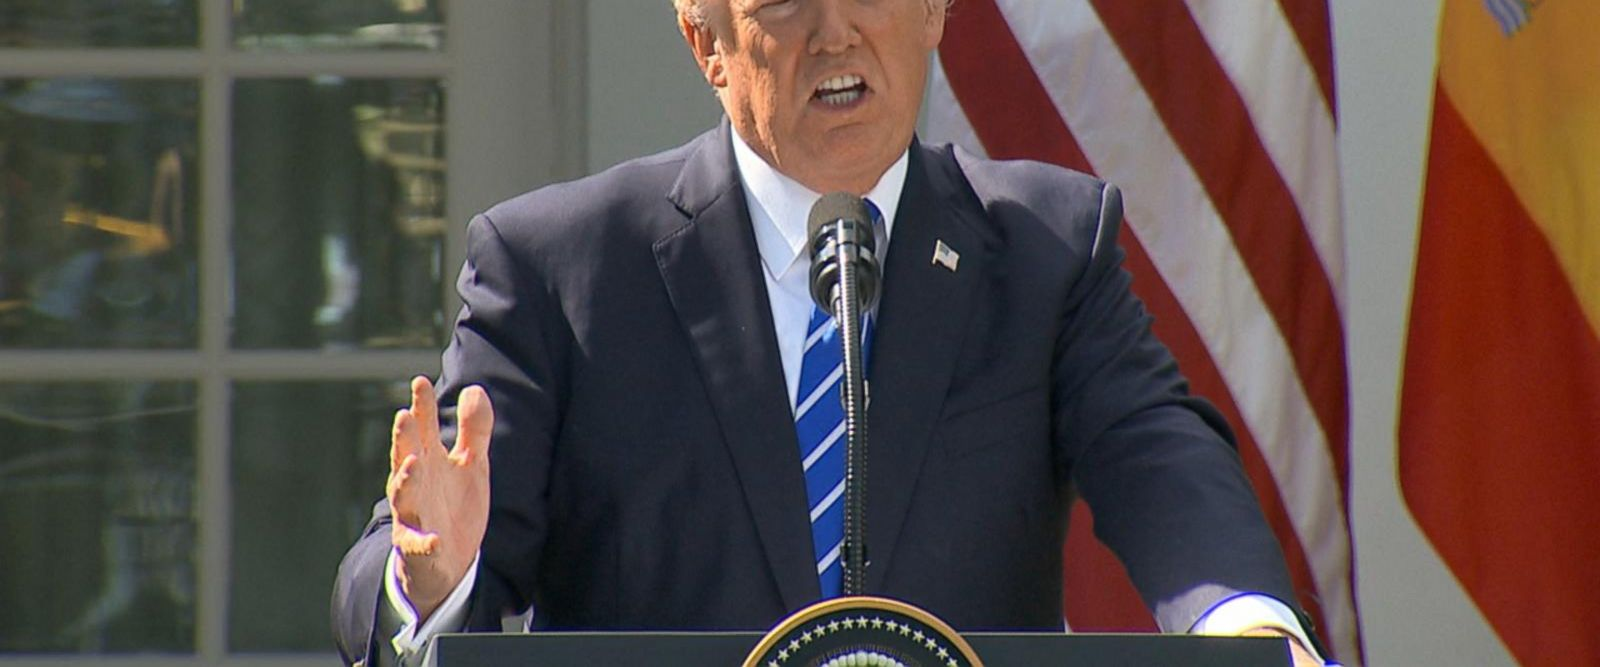 The president was asked about North Korea's threat to shoot down U.S. bombers.